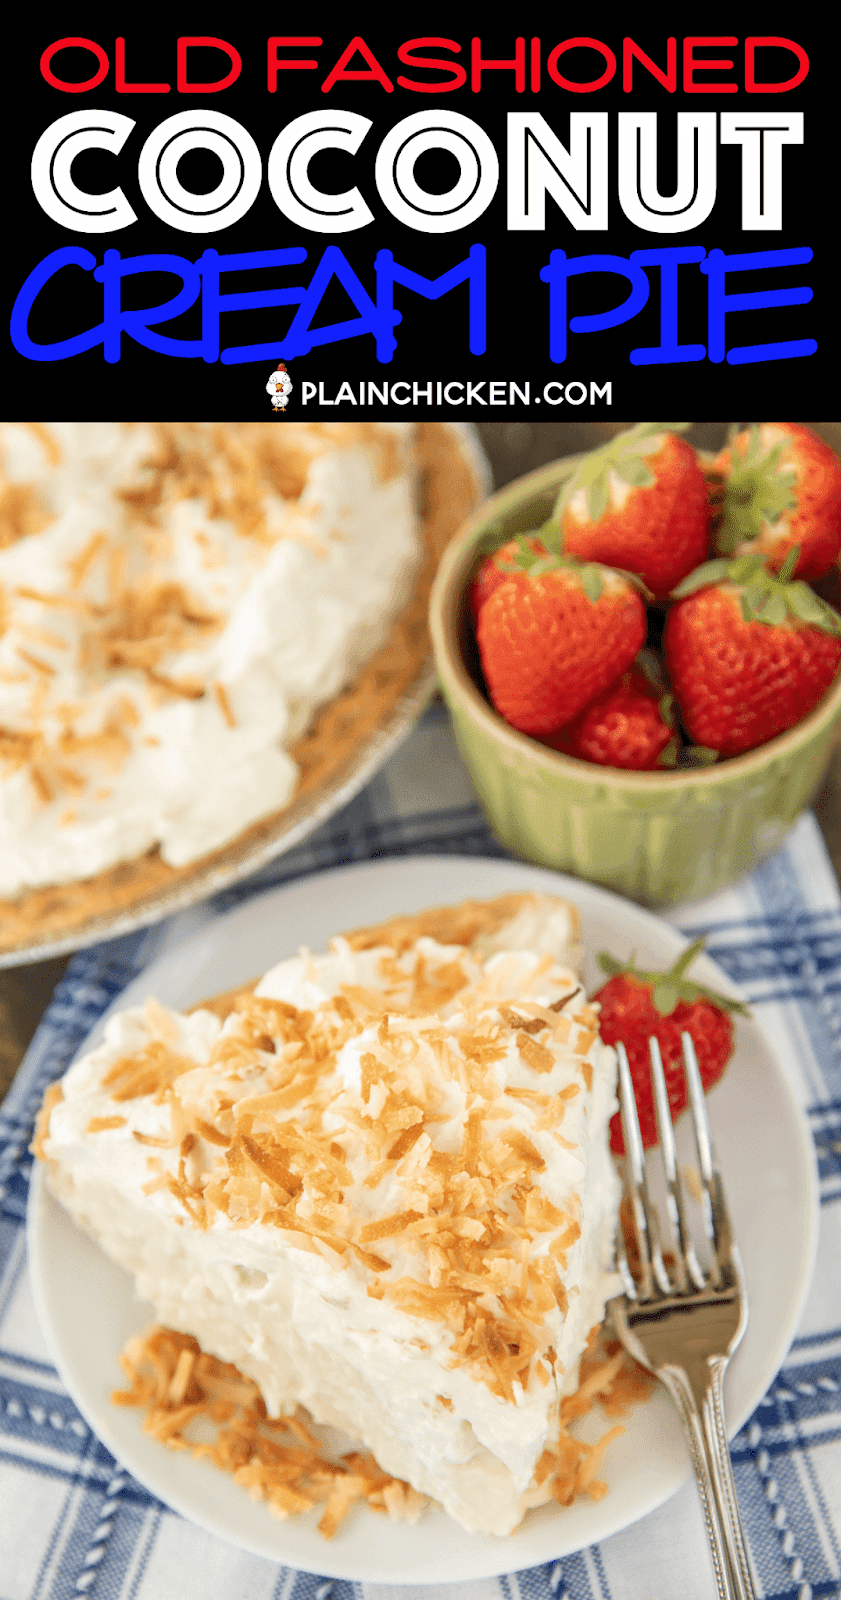 slice of coconut cream pie on a plate with strawberries